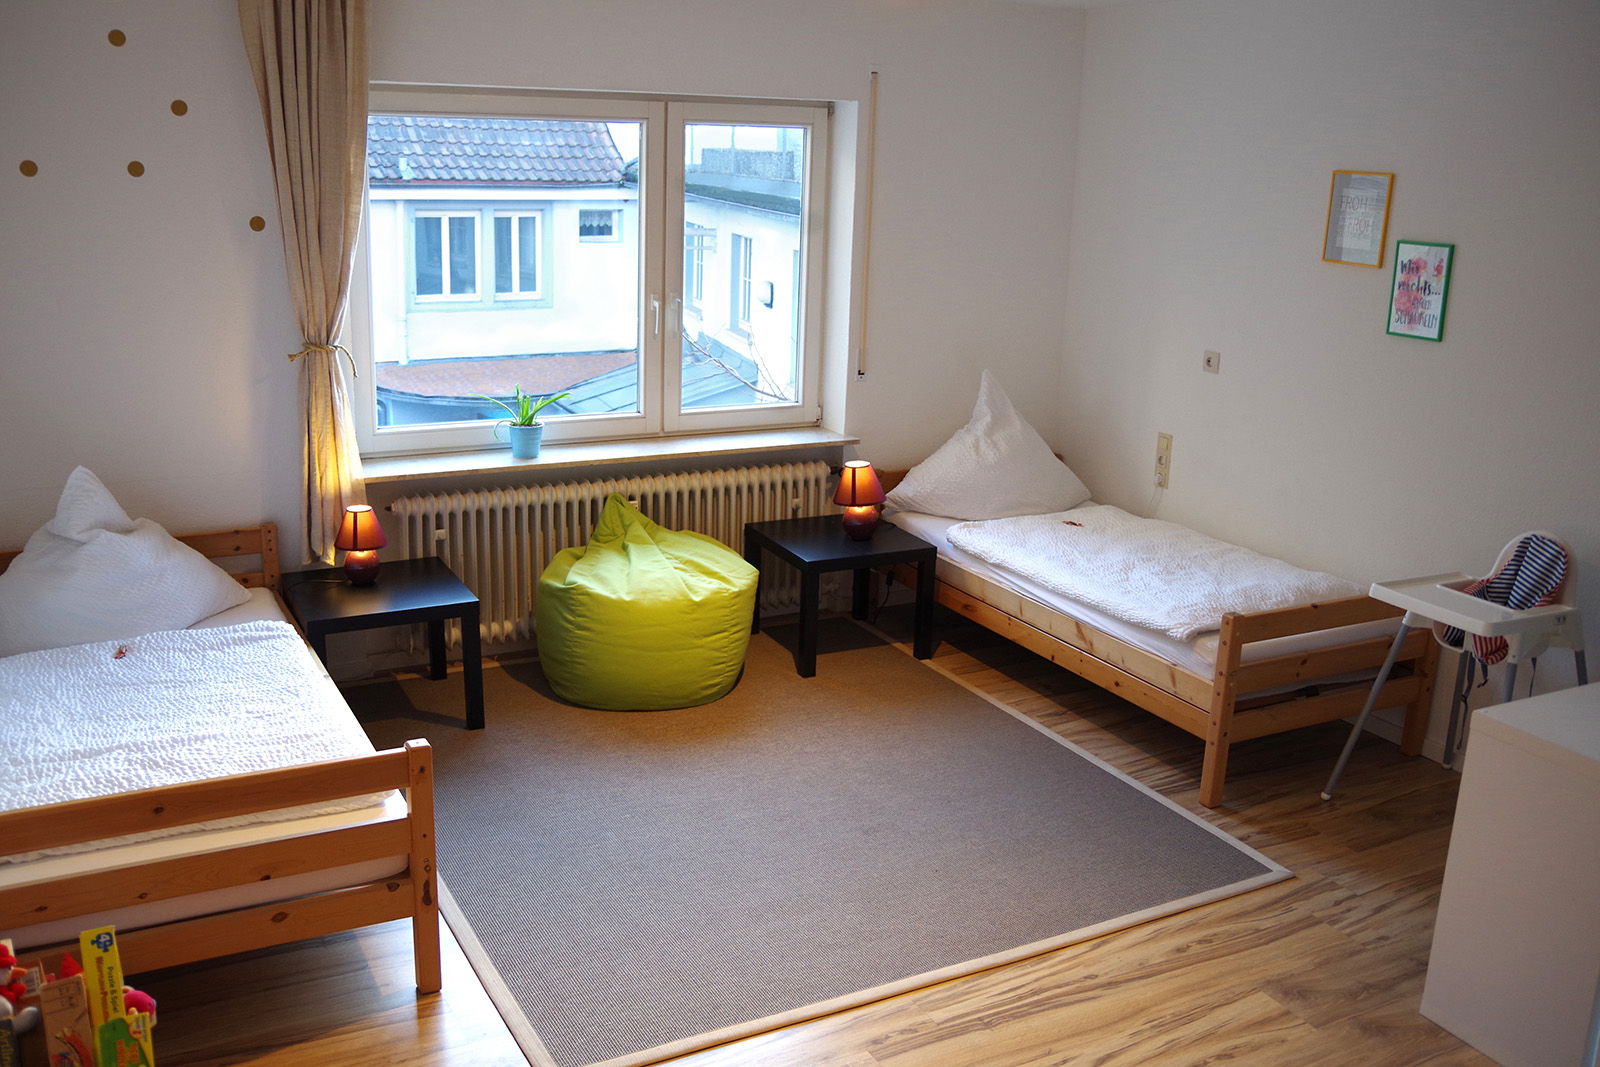 Holiday apartments on Lake Constance: Familienhafen - Children's Room